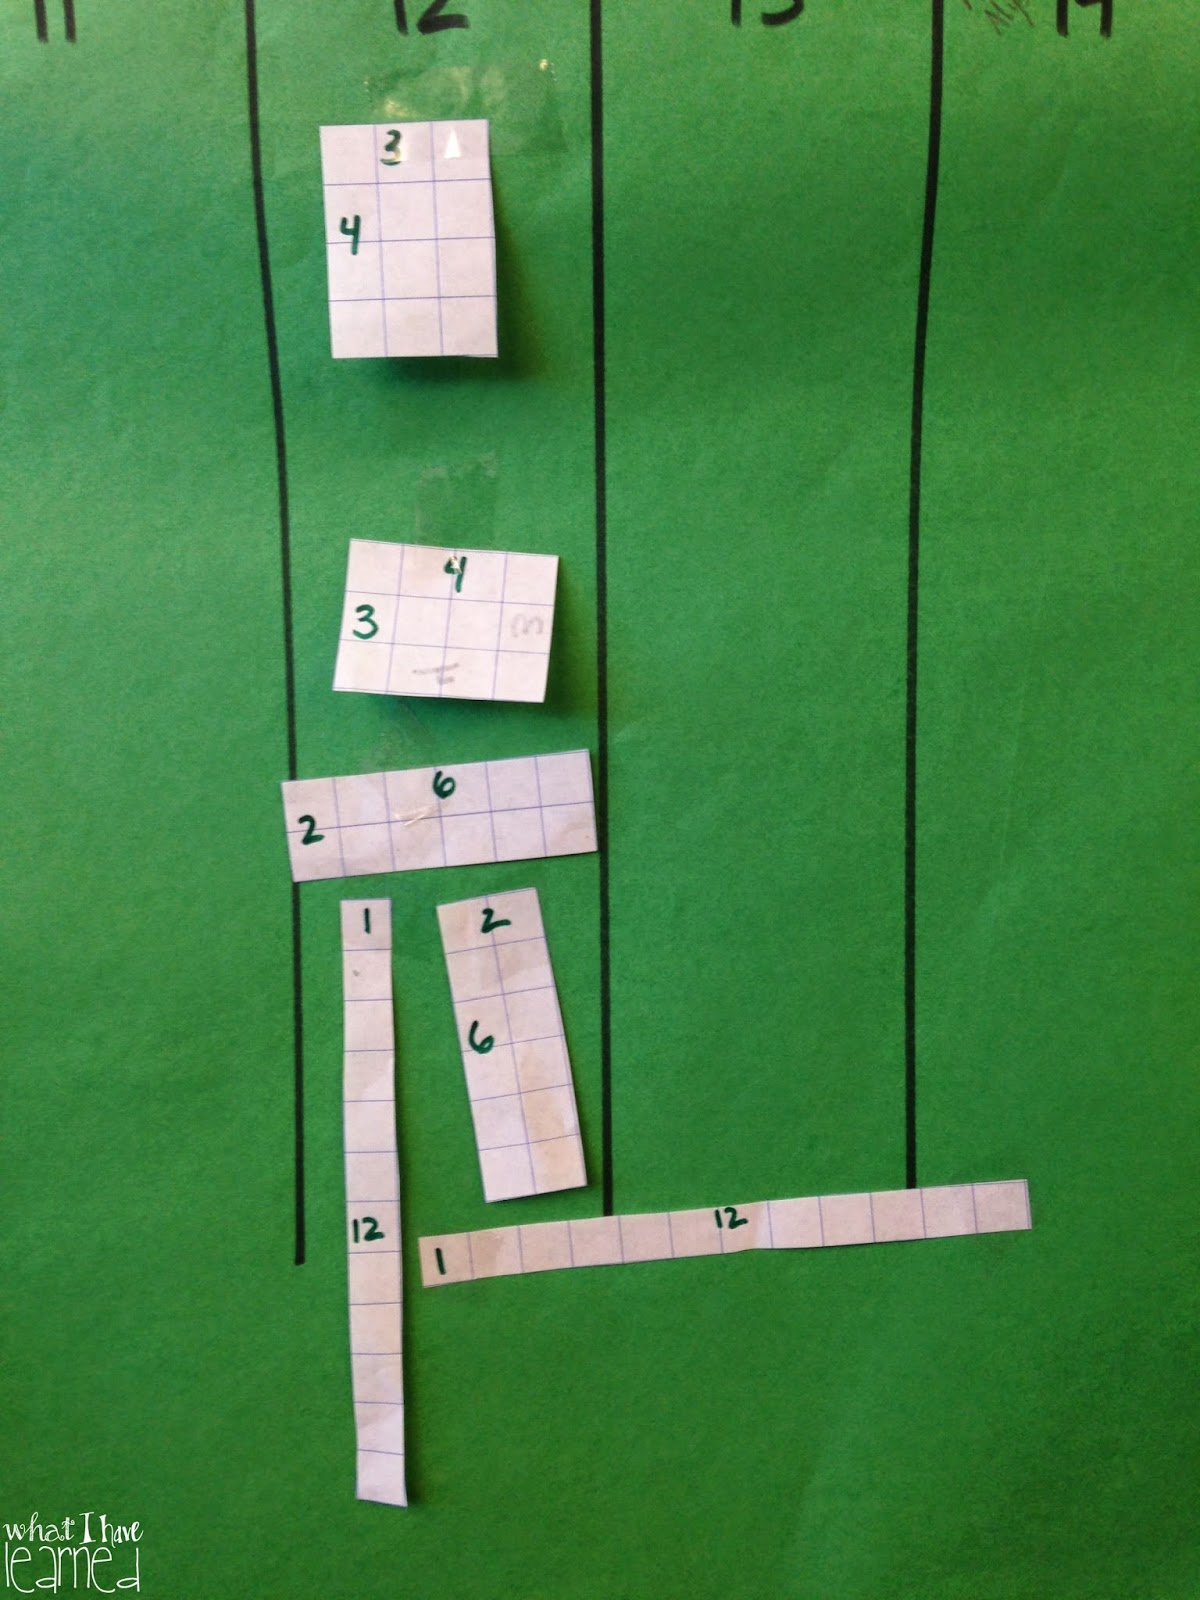 Multiplication Chart Up To 36 I created the chart to go up